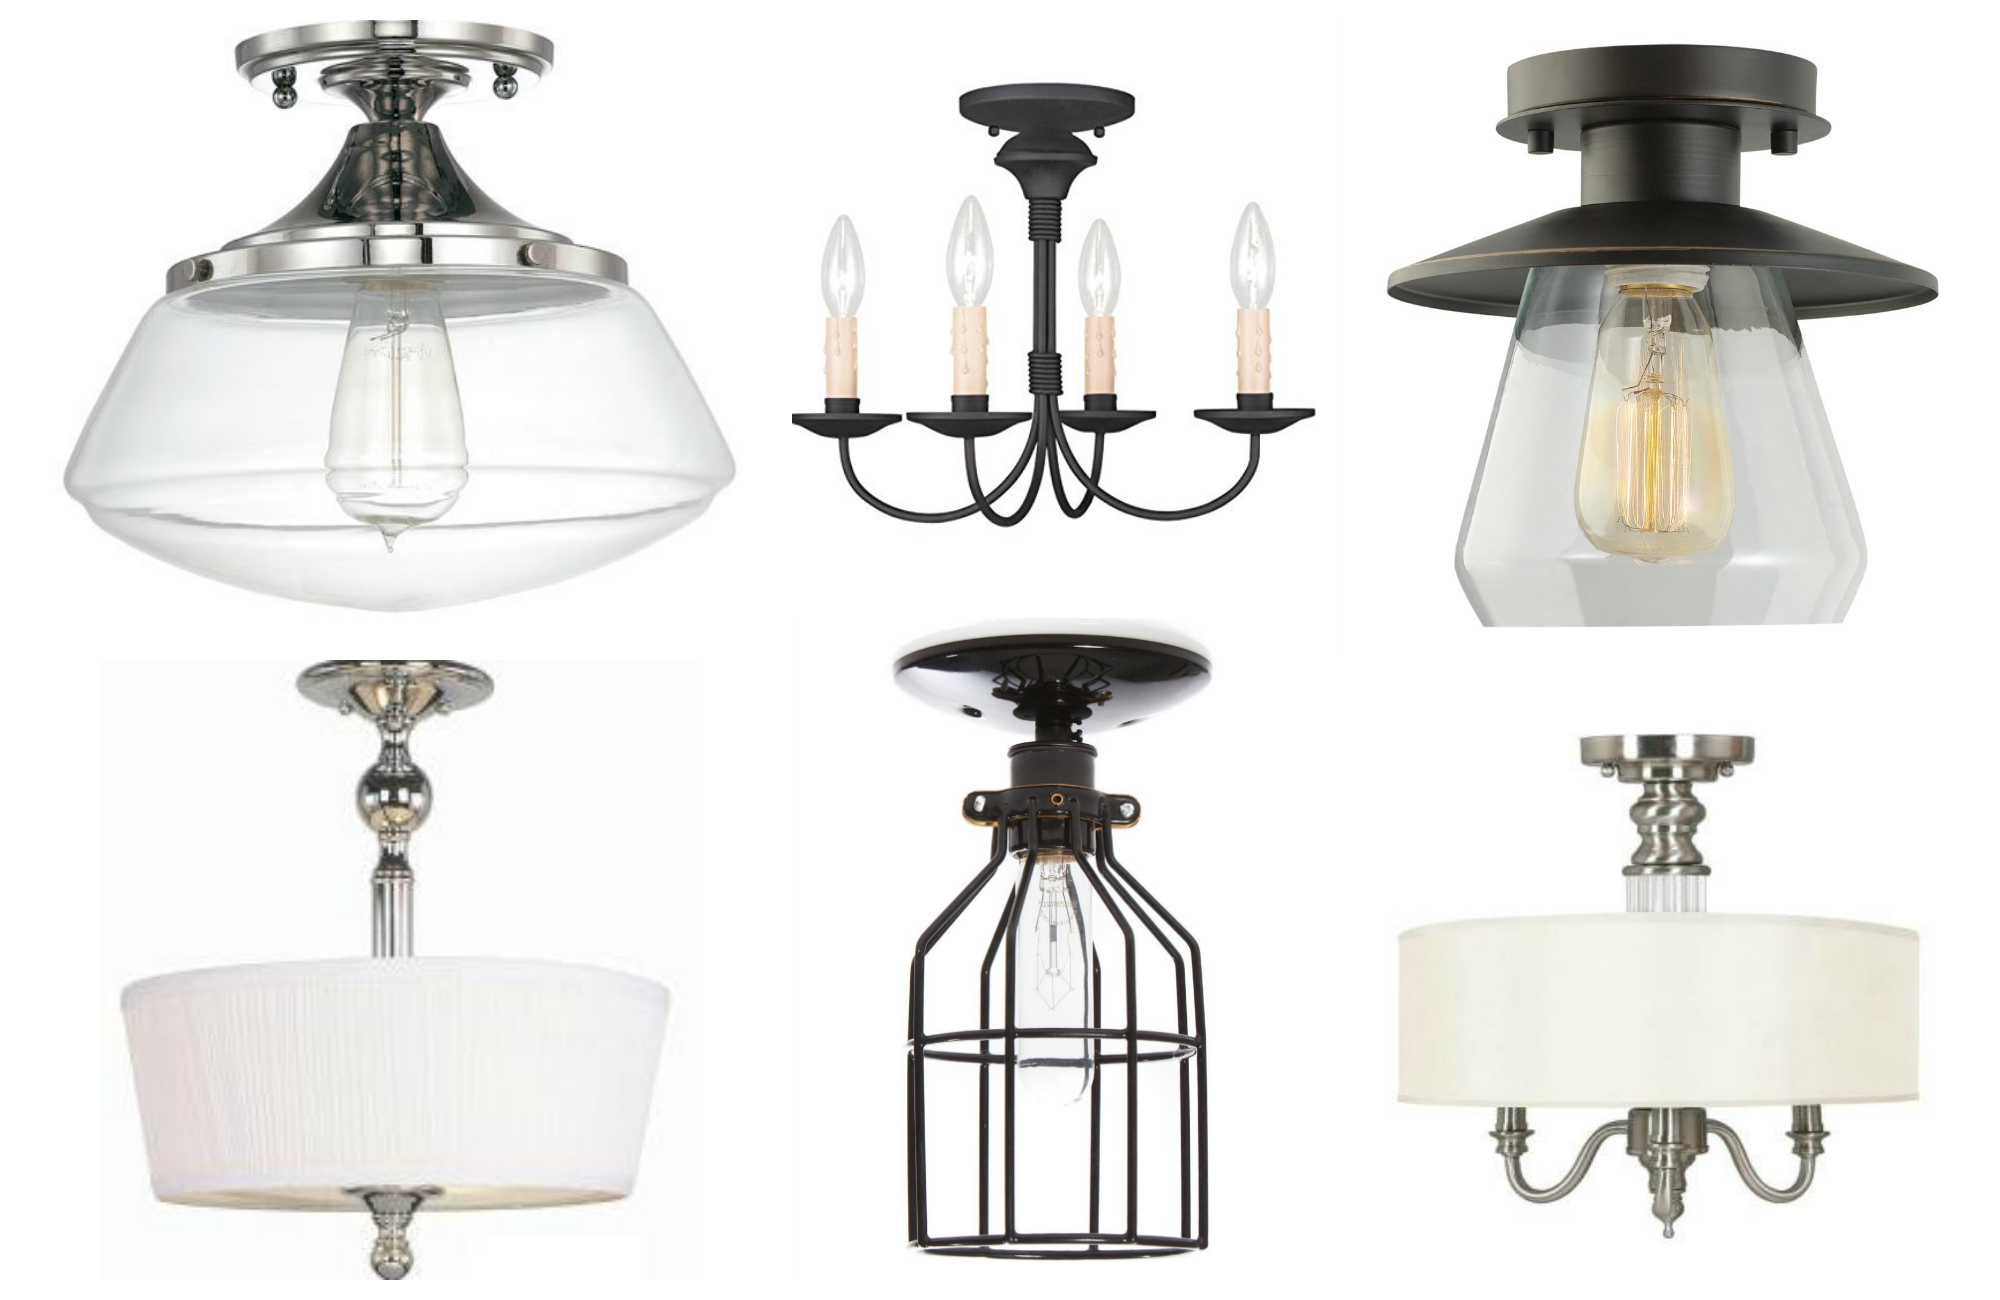 Small Simple Chandelier These Gorgeous High Style Ceiling Lights Will Dress Up A Low